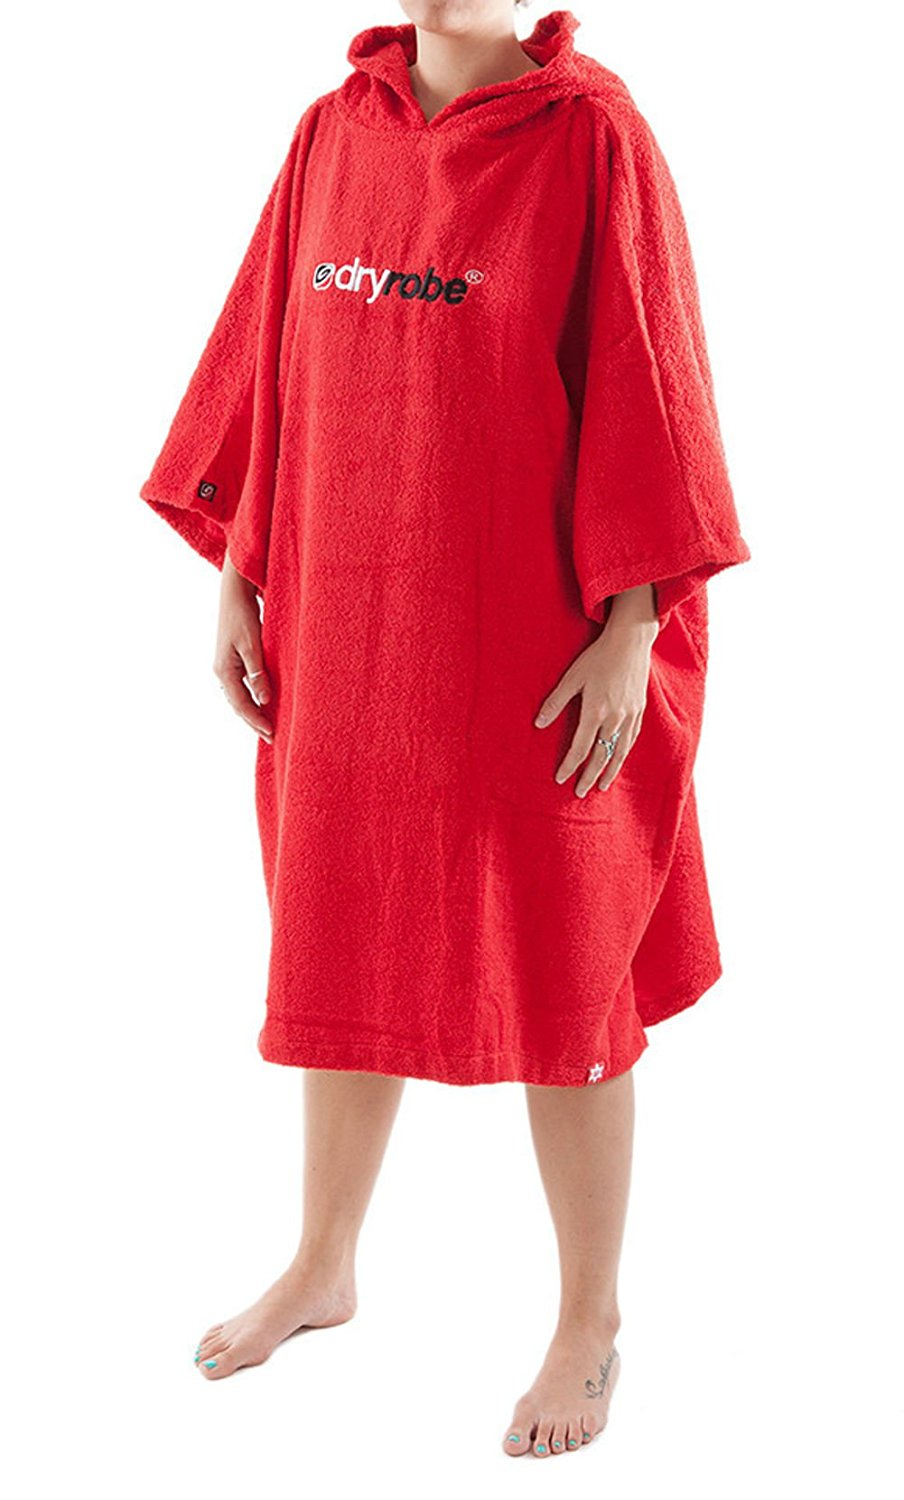 ded20a3f1aefa Get Quotations · Dryrobe Adult Beach Towel Changing Robe - Short Sleeve  Towelling Change Poncho / Dry Robe